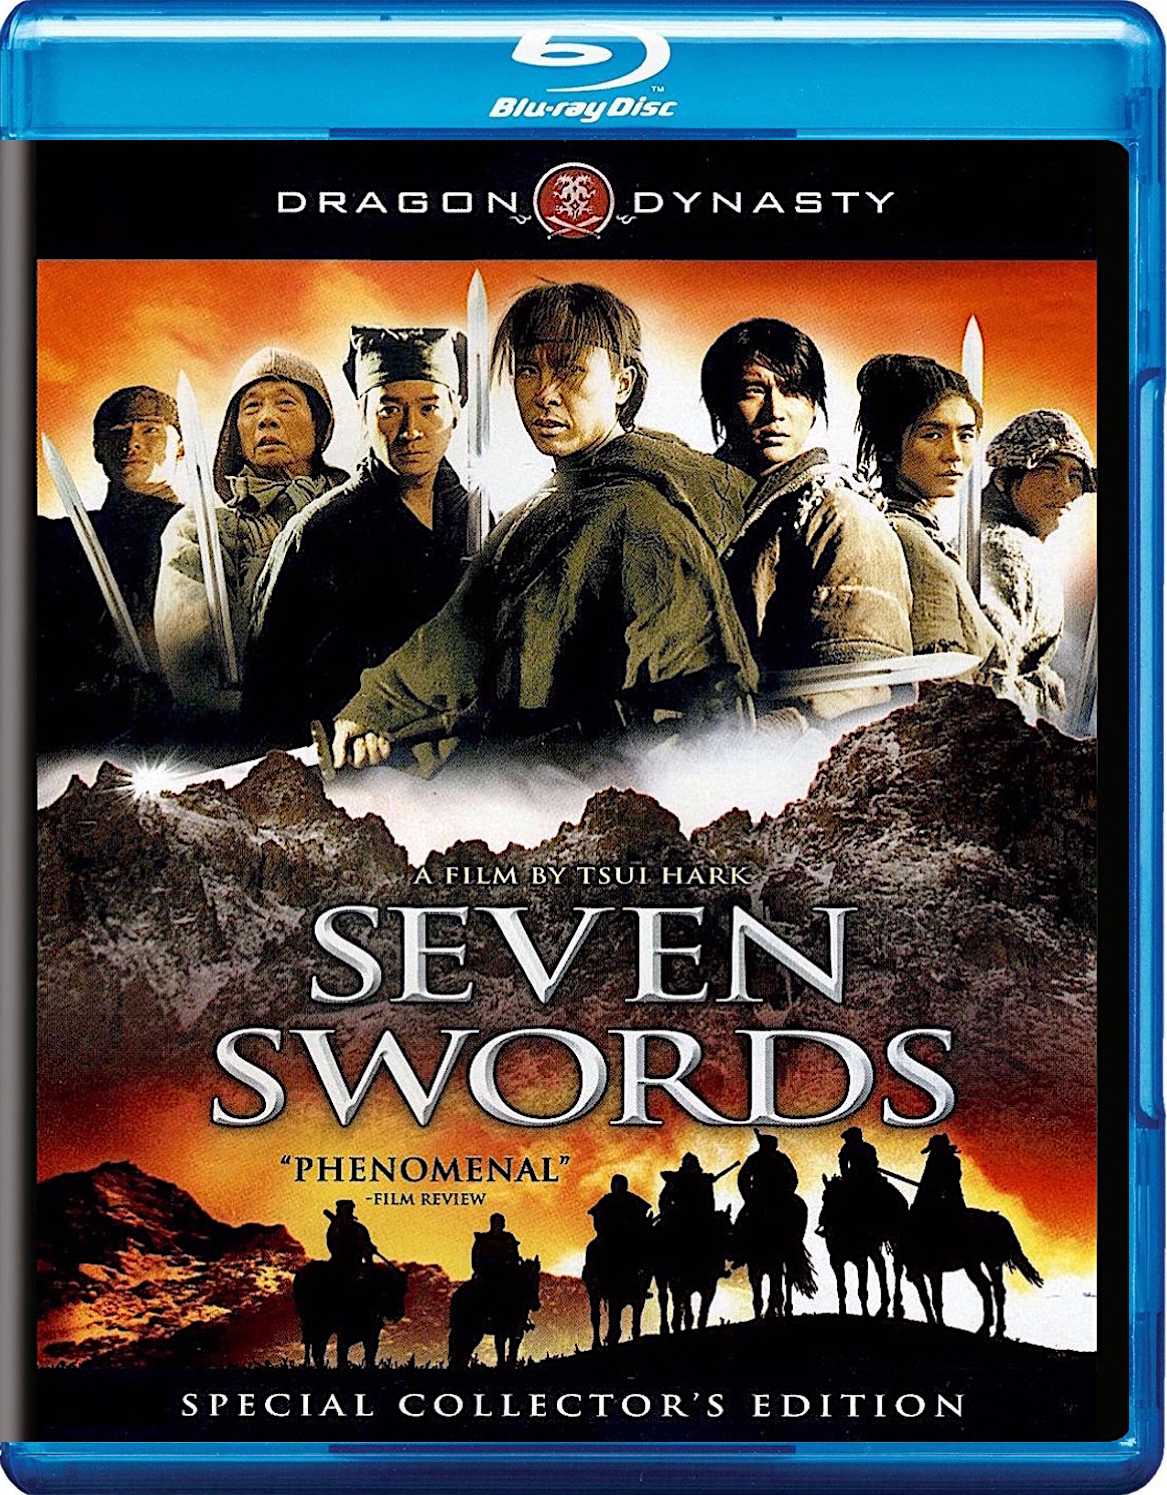 blu-ray and dvd covers: DRAGON DYNASTY BLU RAYS: THE 36TH